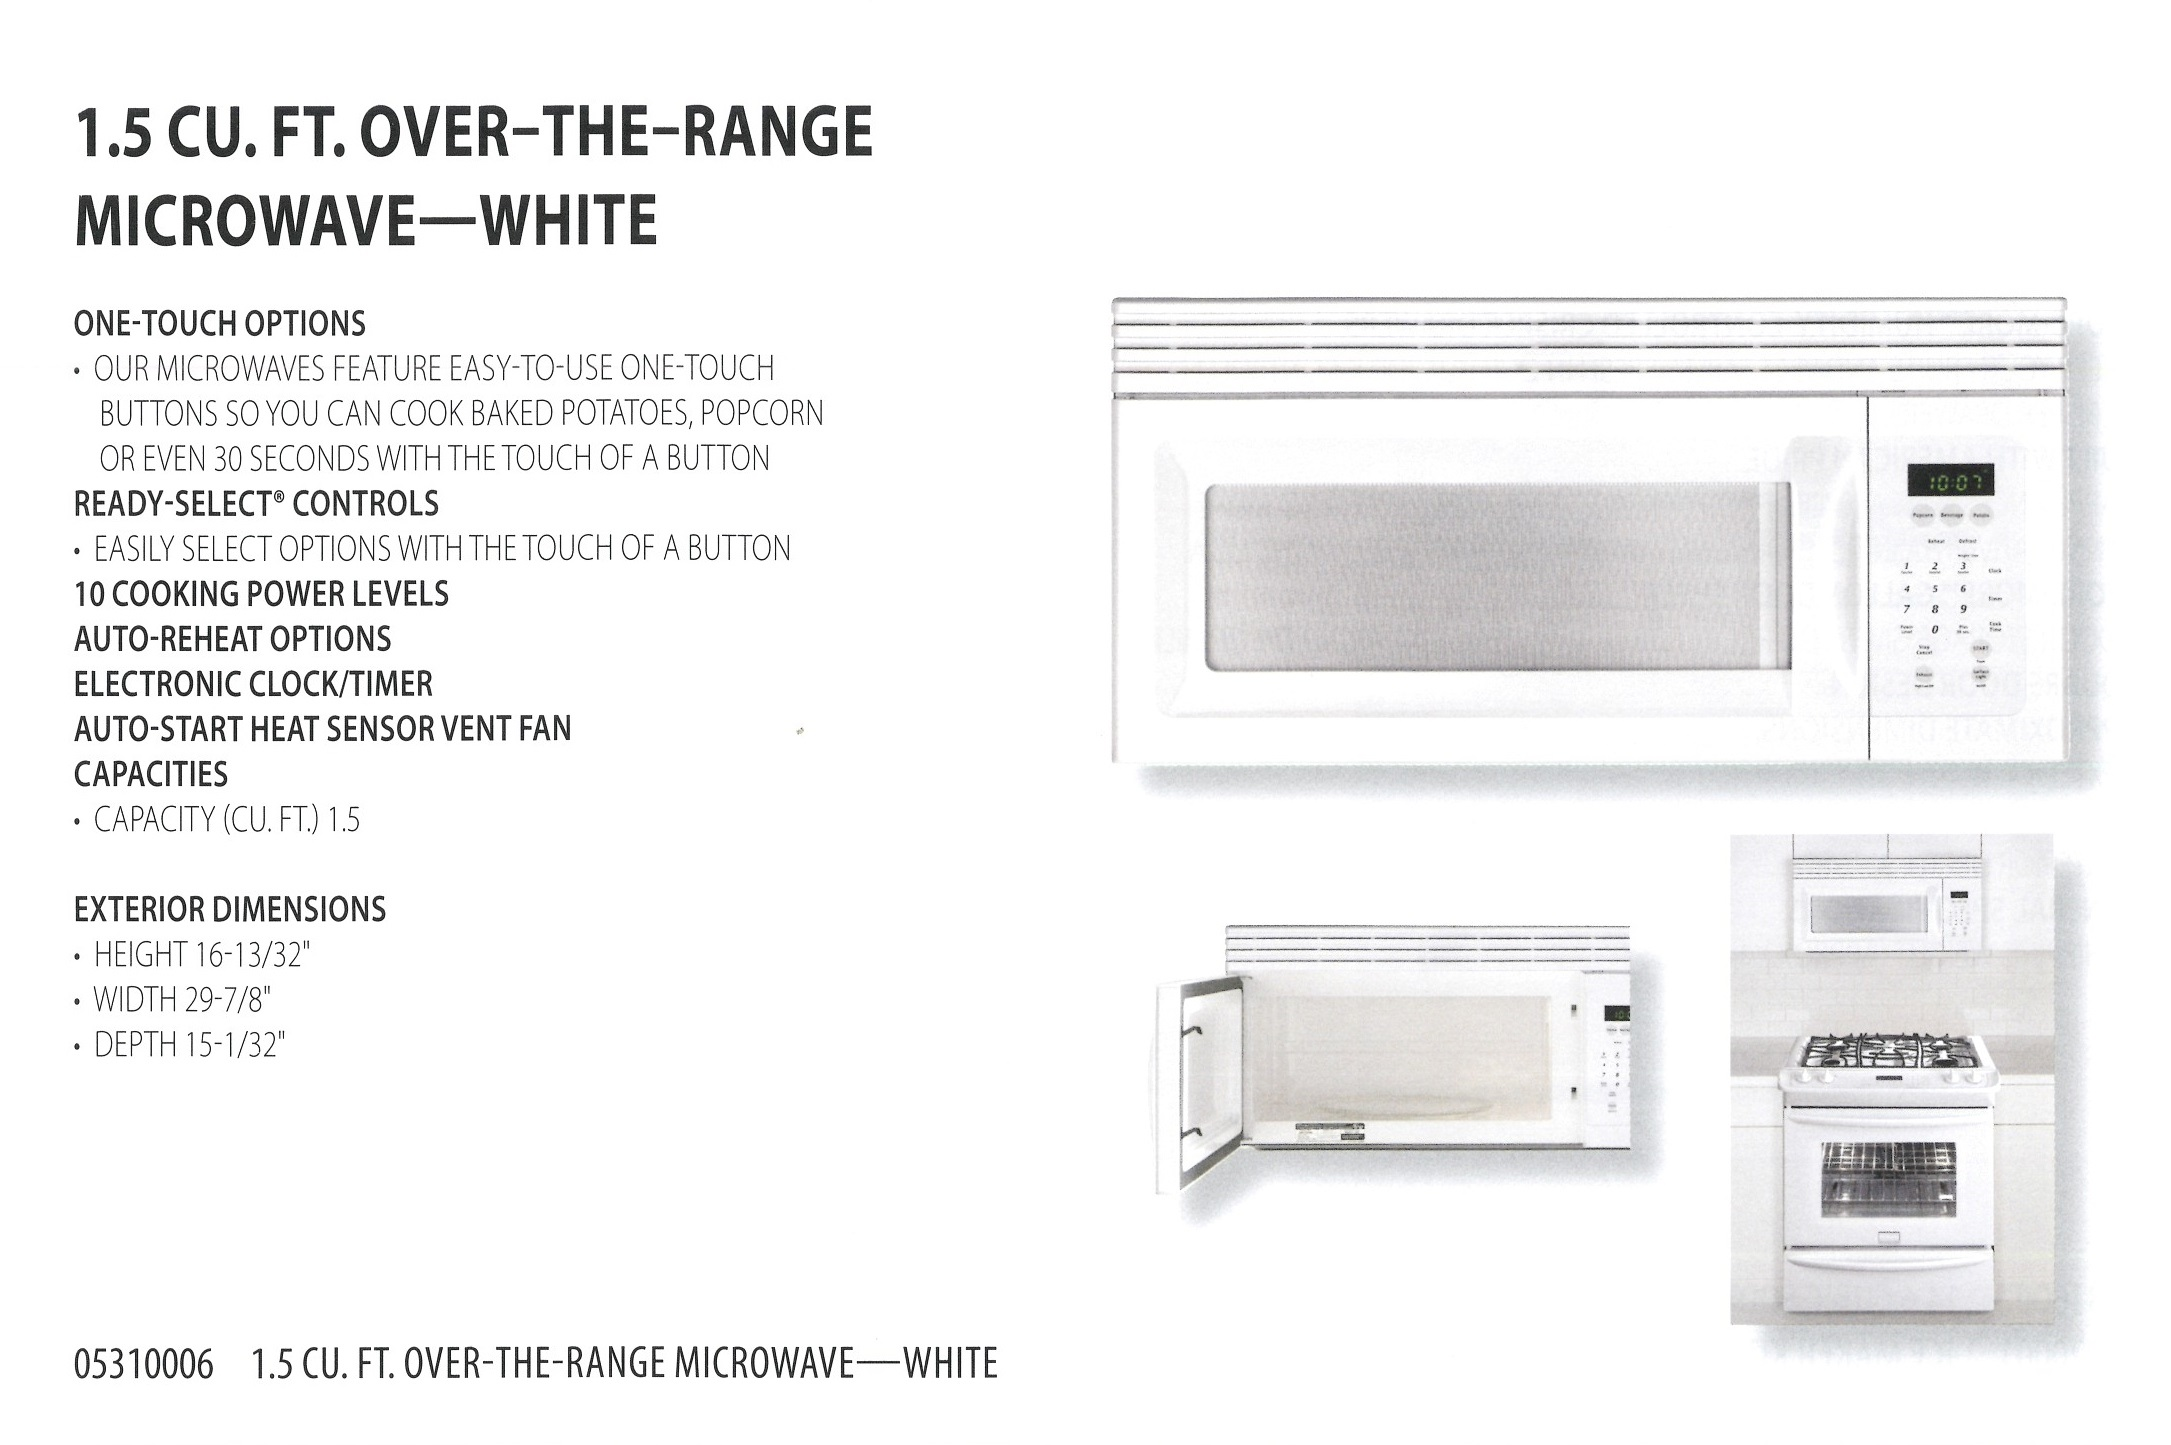 05310006 1.5 CU FT OVER THE RANGE MICROWAVE WHITE